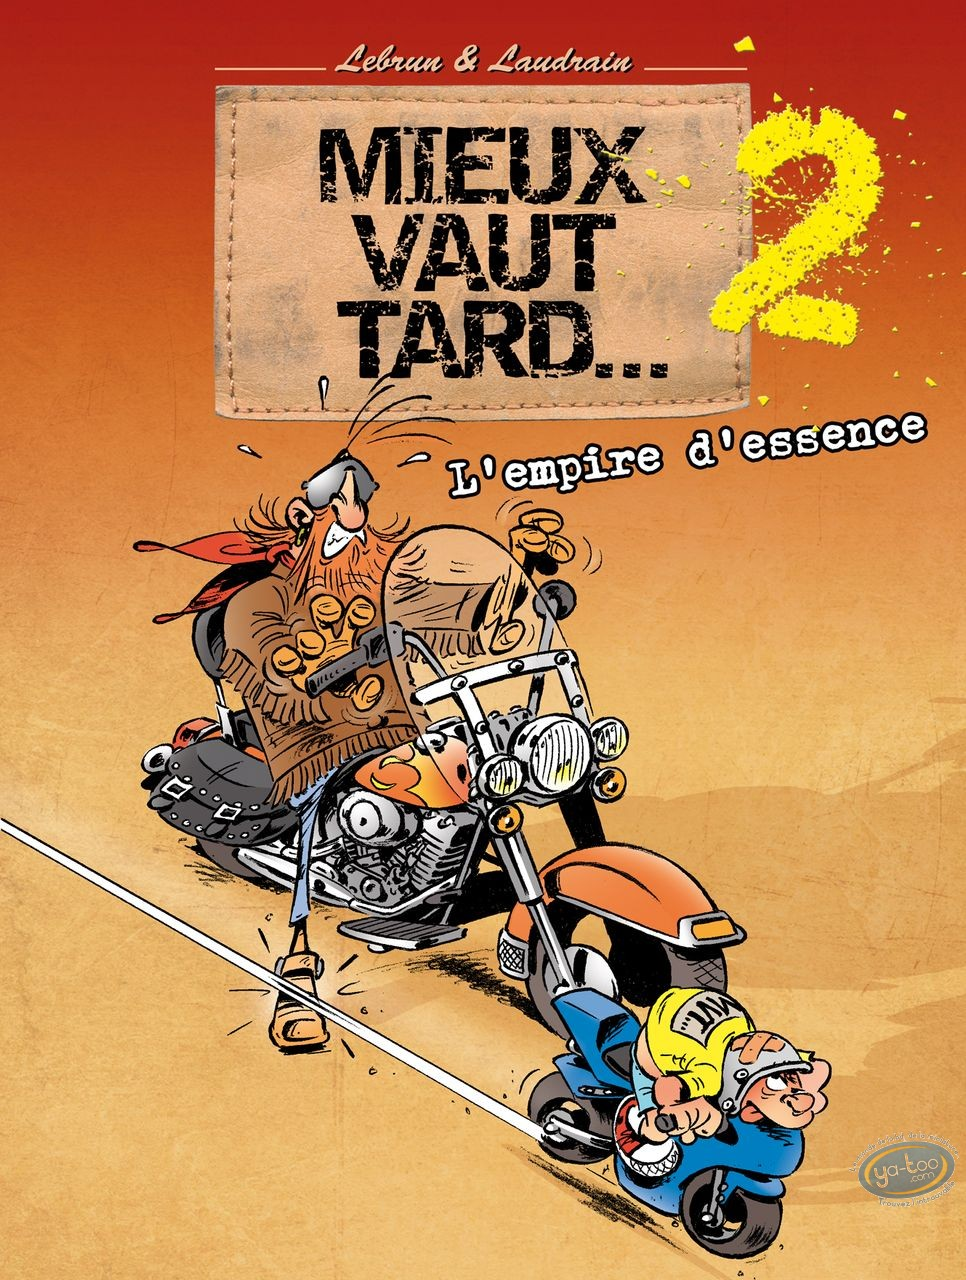 European Comic Books, Mieux vaut tard : It is better late volume 2 - The empire of gasoline